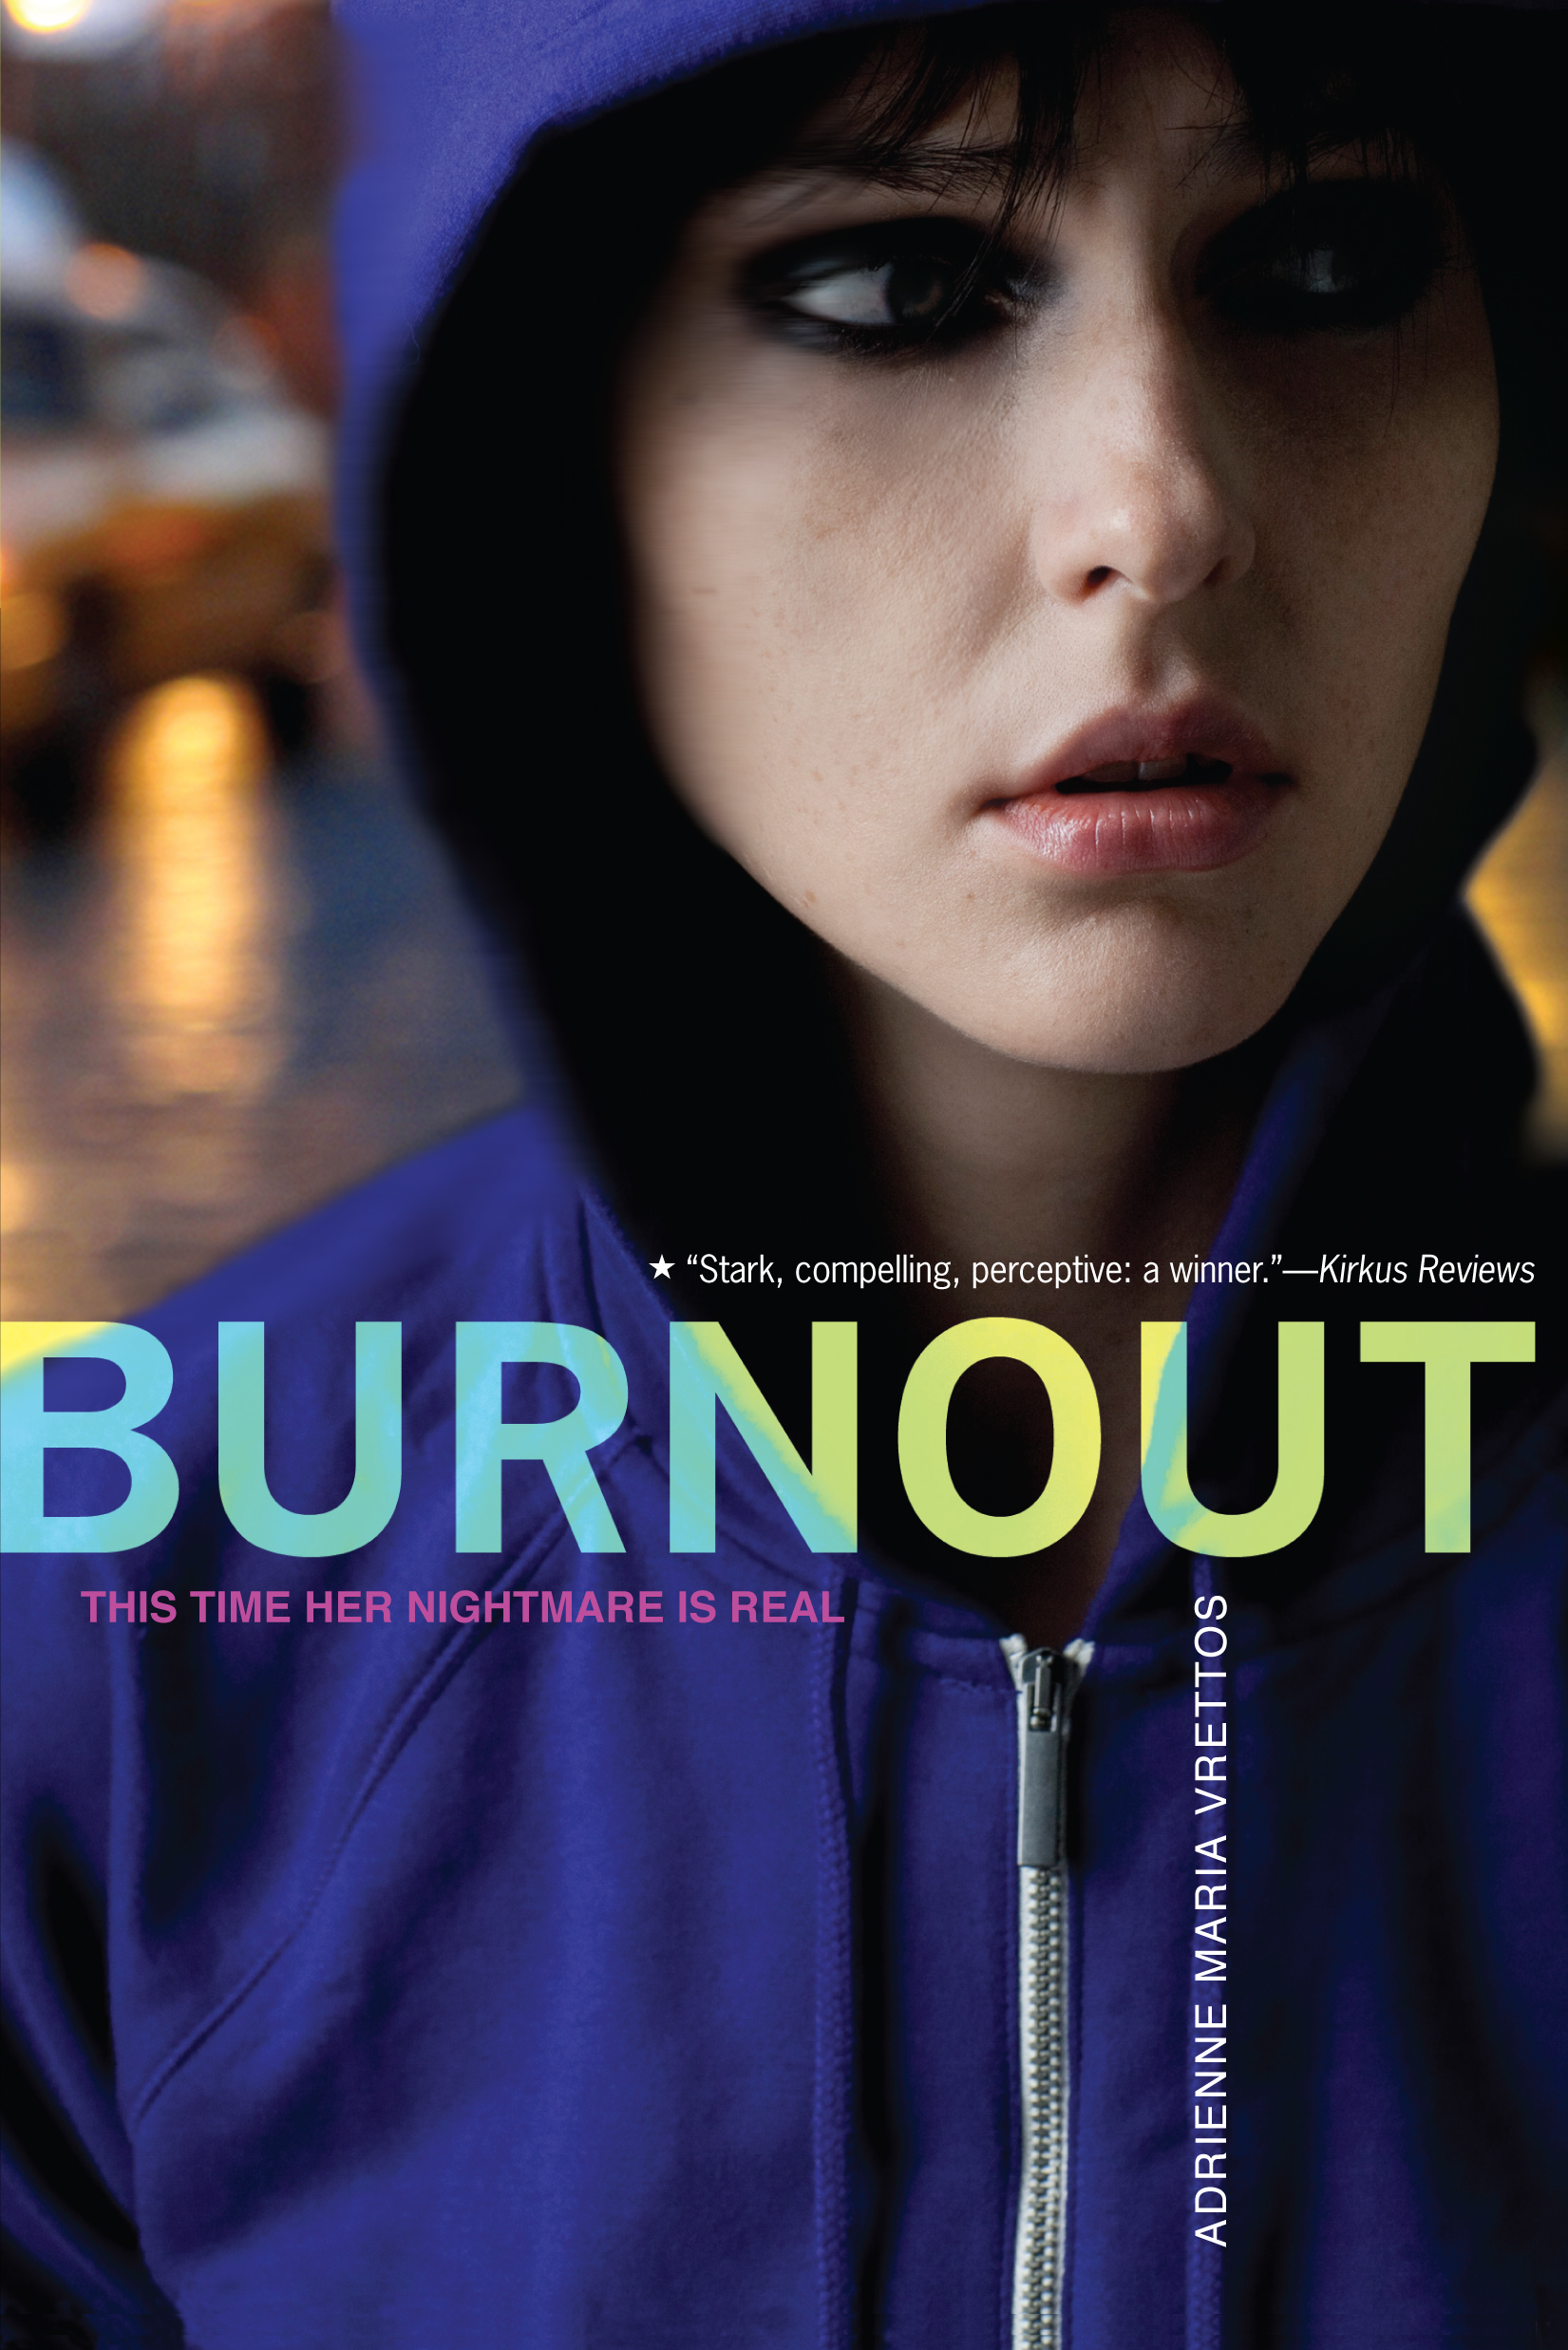 Adrienne maria vrettos official publisher page simon schuster burnout fandeluxe Ebook collections